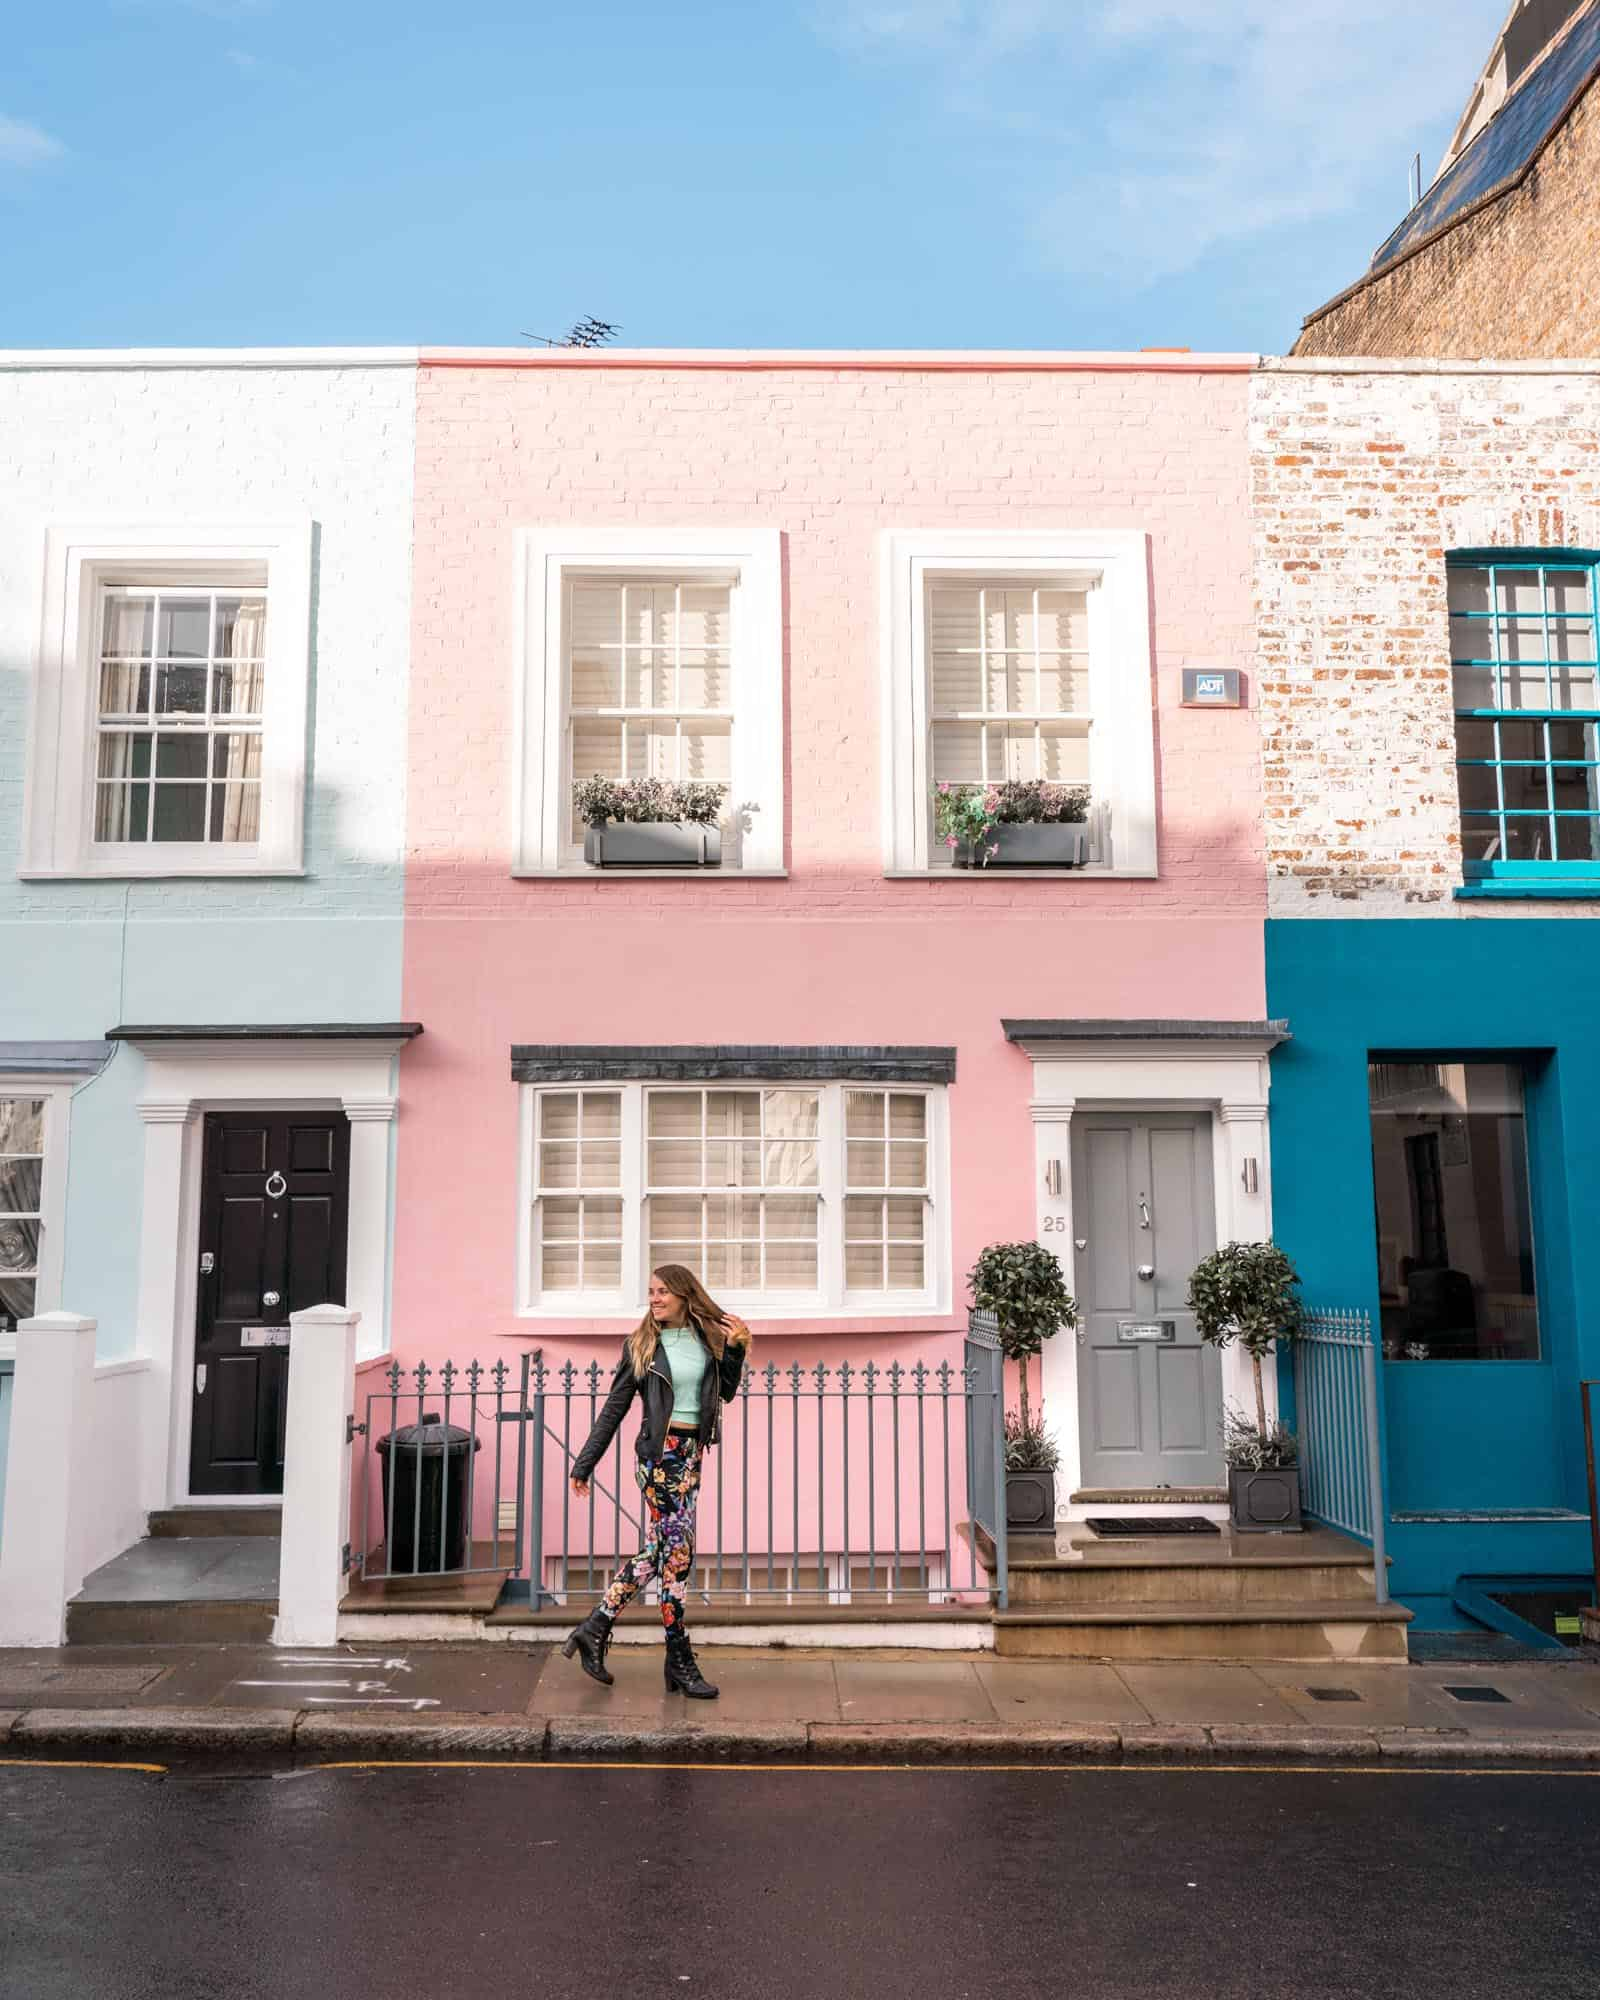 Most colourful houses in Notting Hill - Uxbridge Street